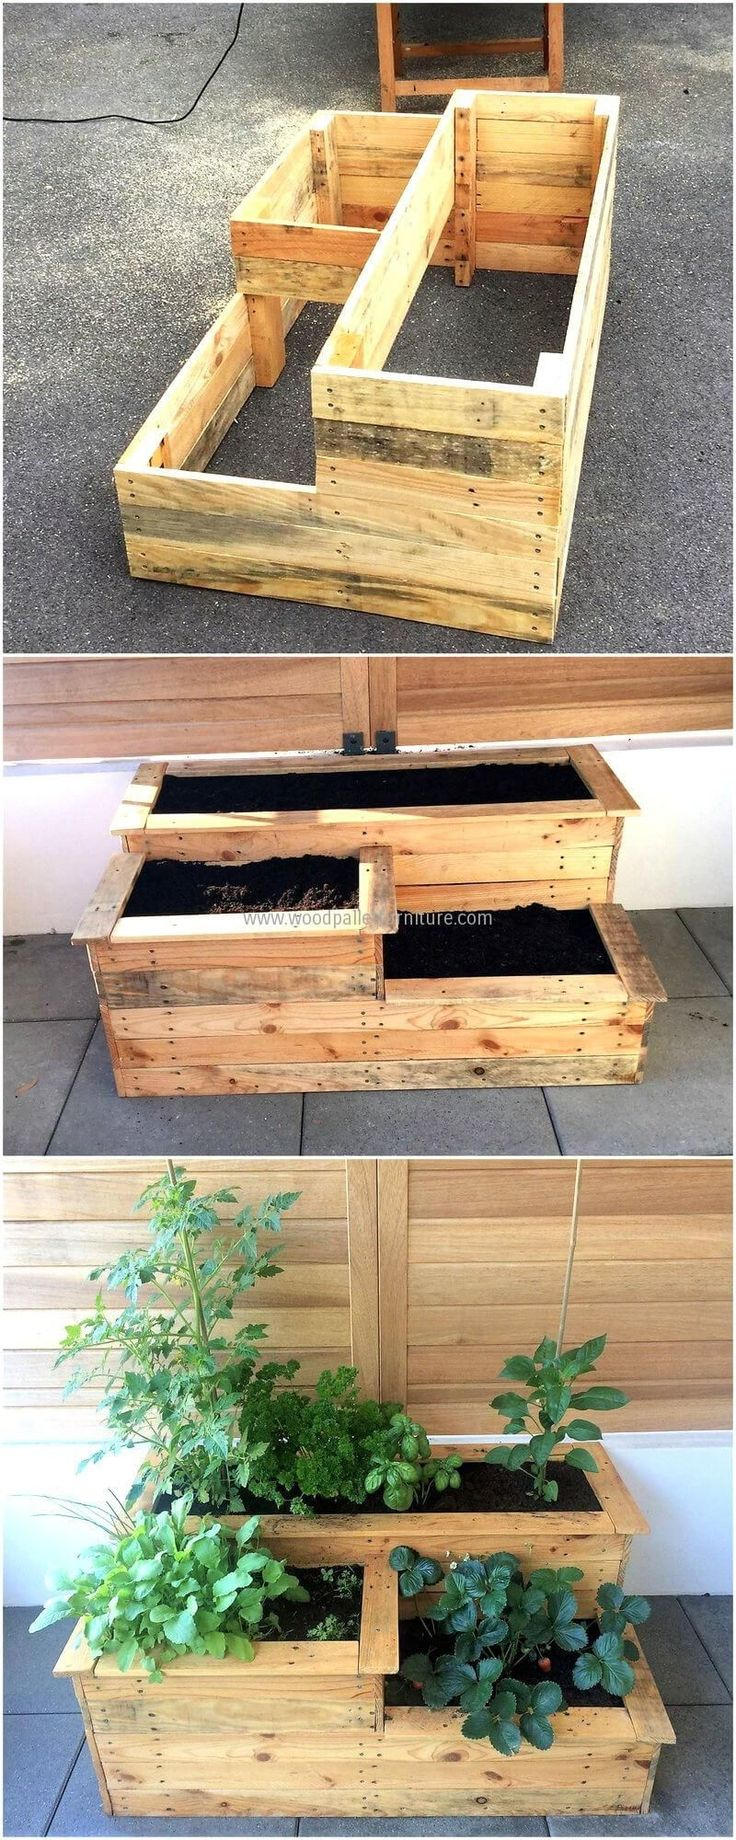 best 25 wood pallet planters ideas on pinterest pallet planters wood pallet yard furniture. Black Bedroom Furniture Sets. Home Design Ideas